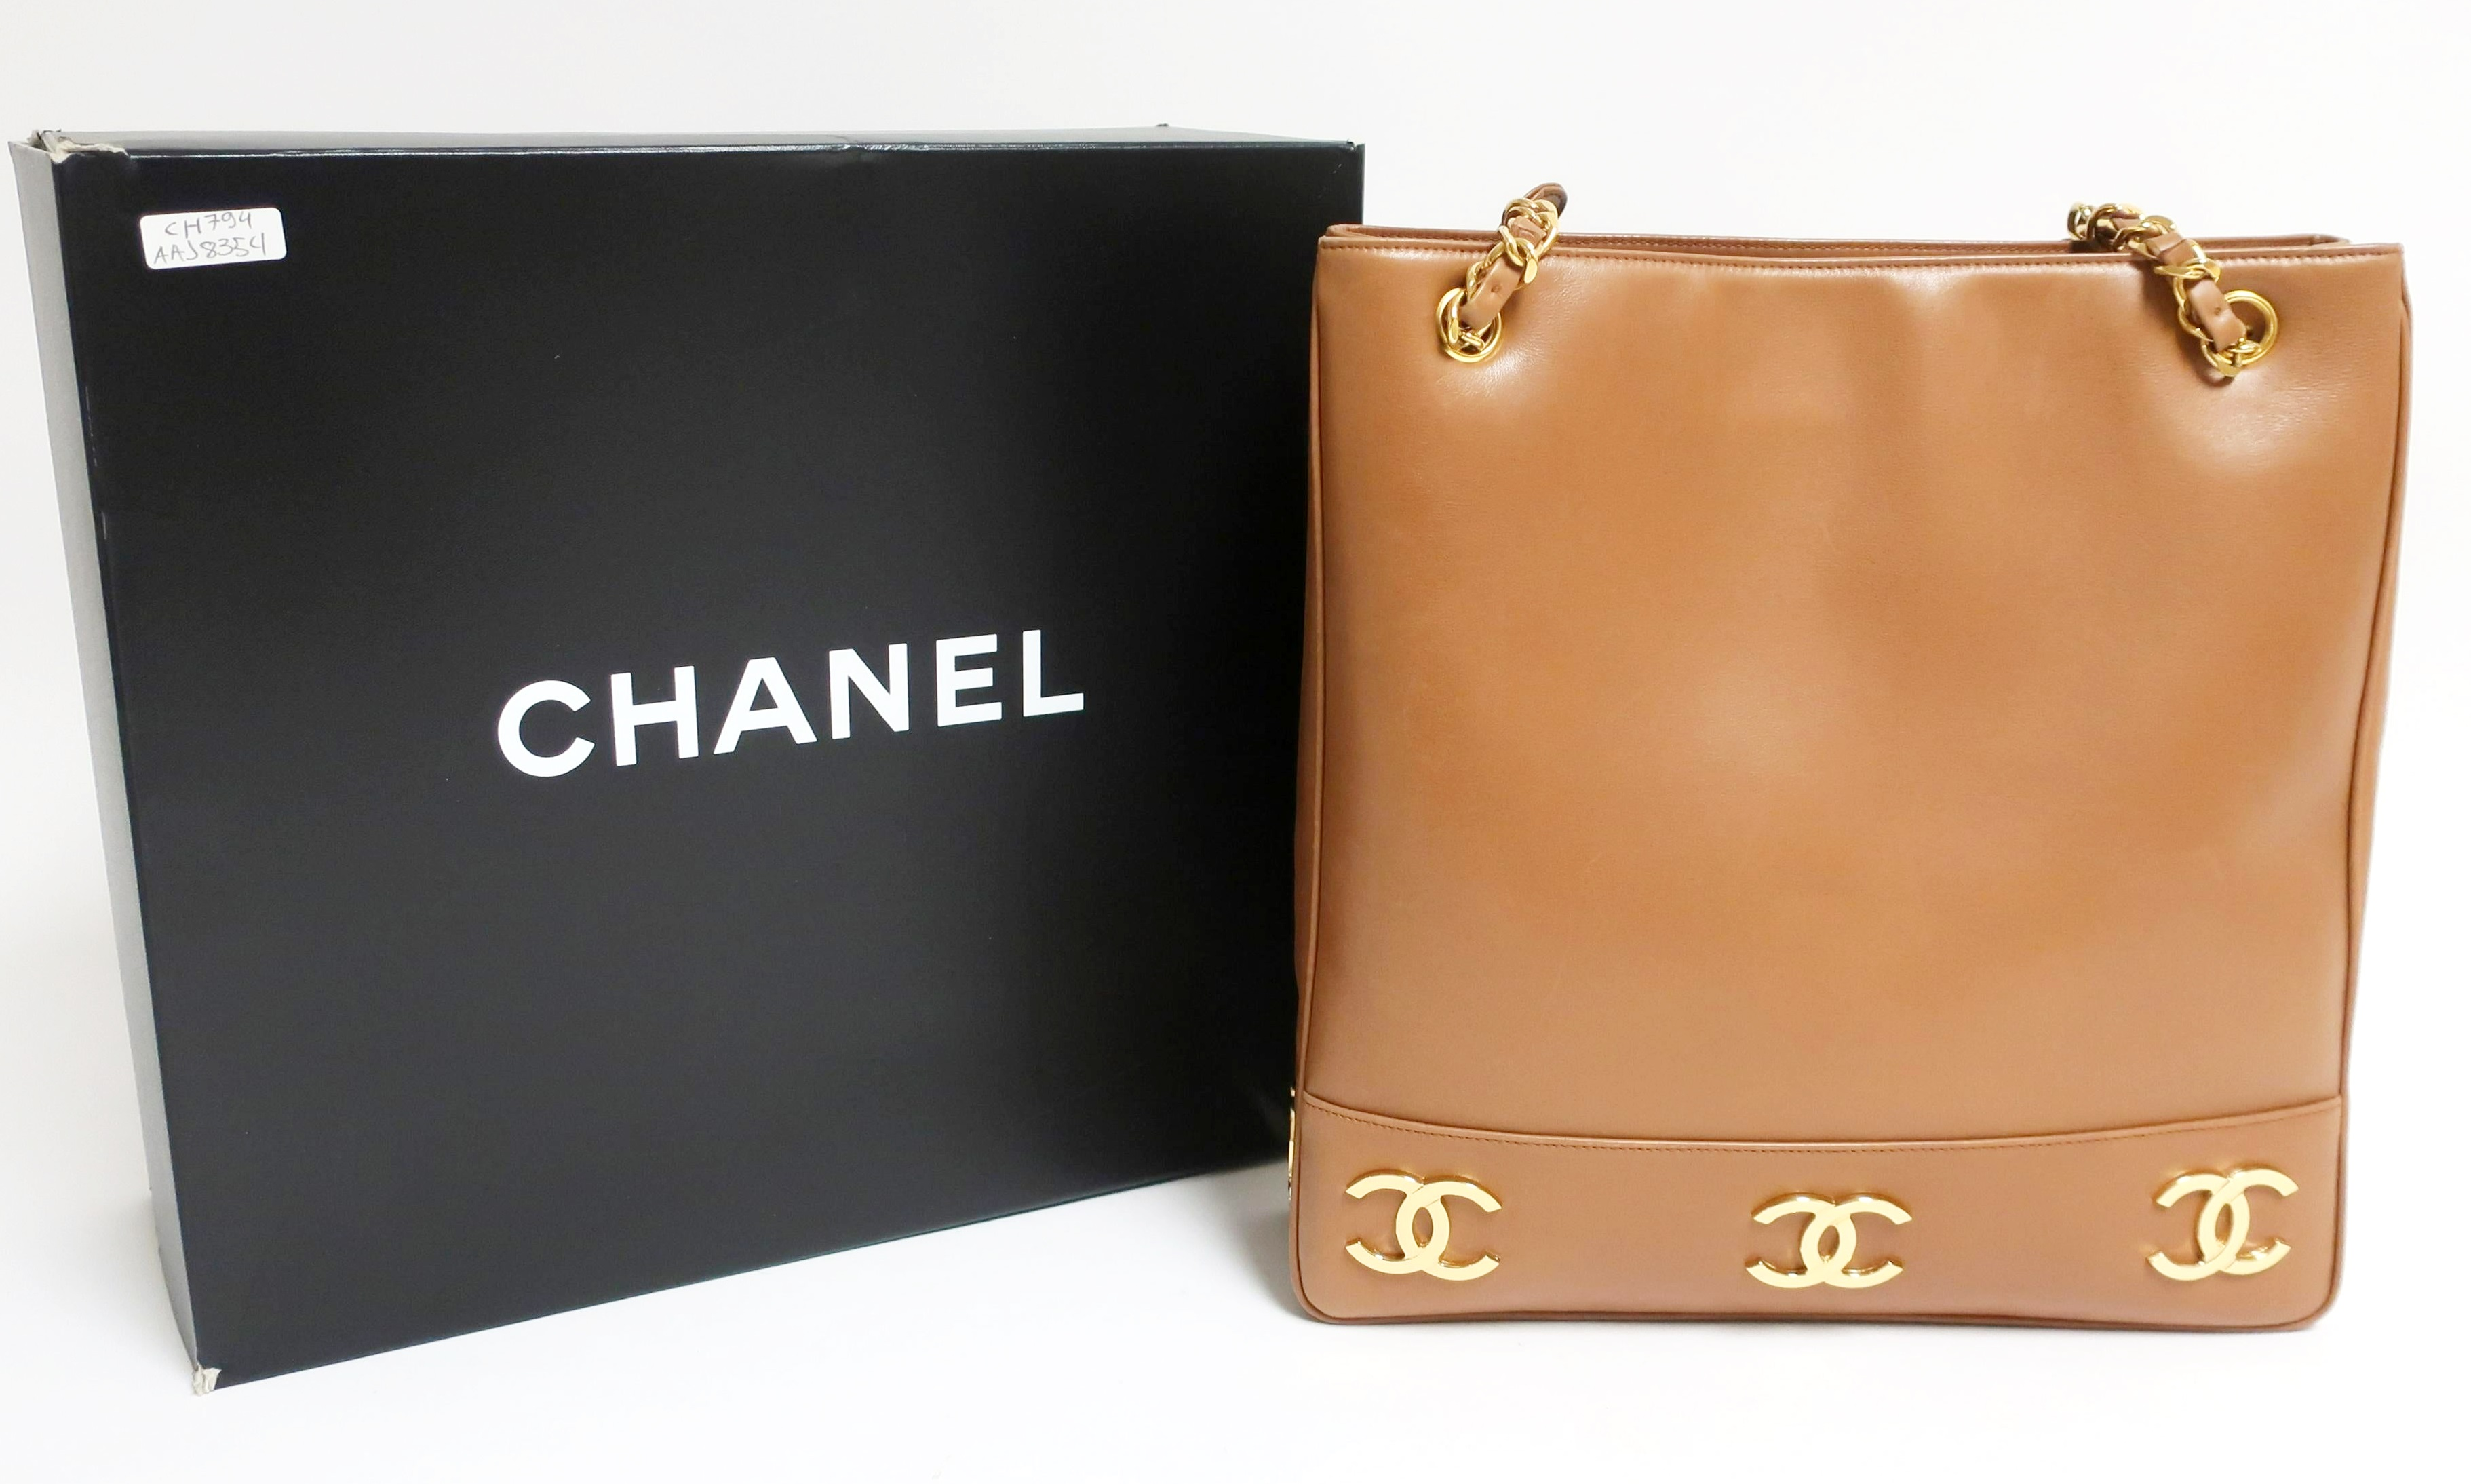 Vintage Chanel Shoulder Tote. Sold For $2,080